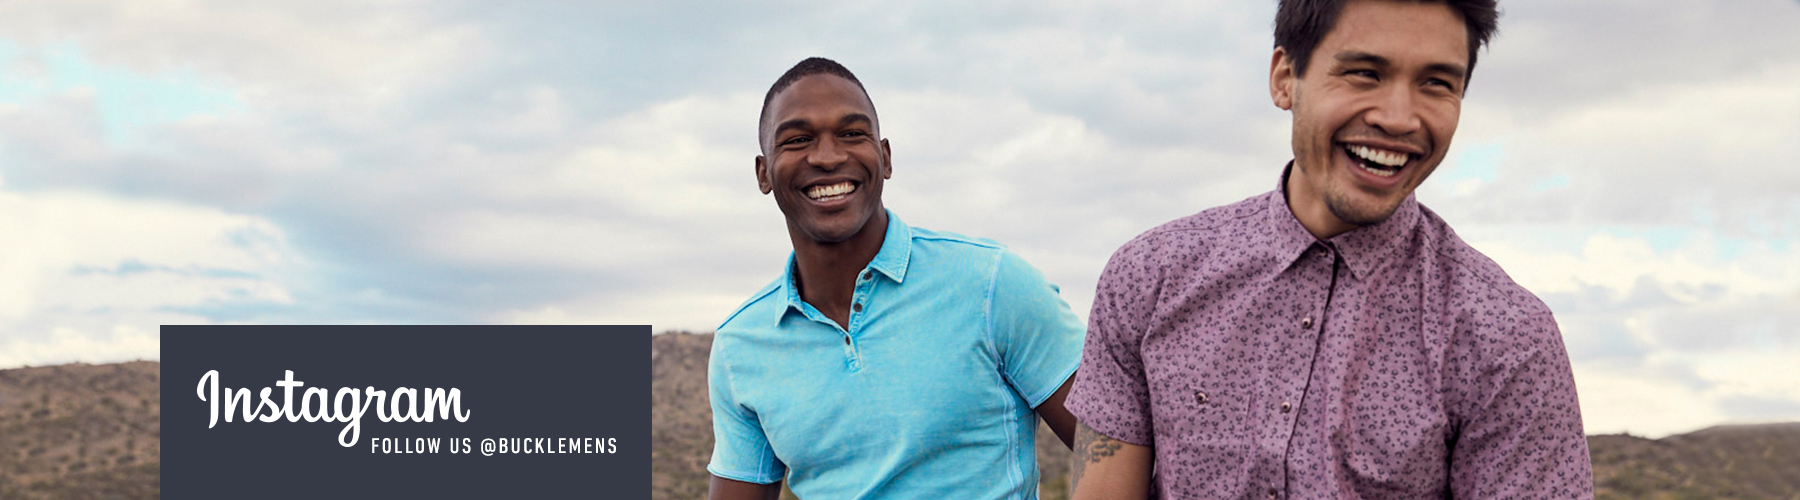 Two guys laughing, one wearing a blue BKE polo, and the other one wearing a purple, printed, button-up shirt.